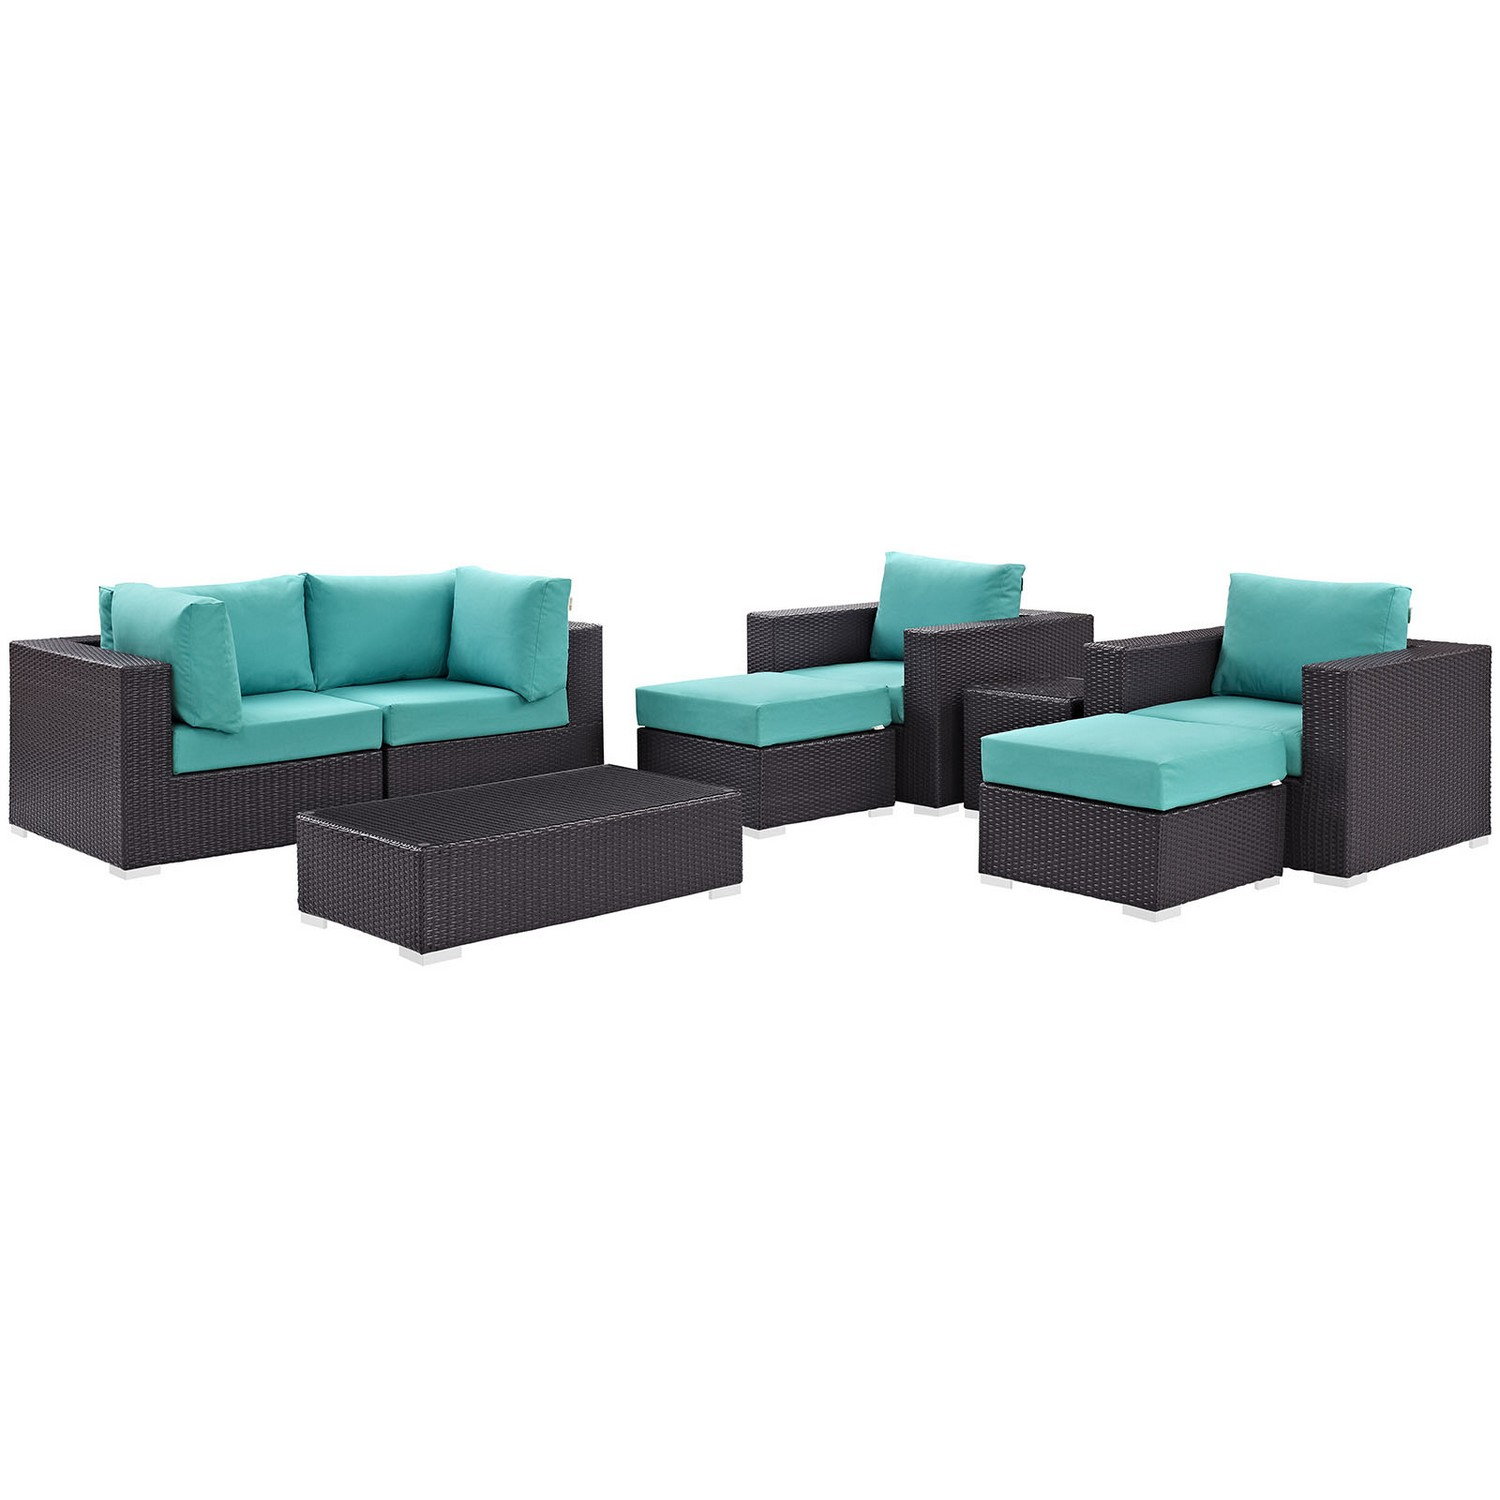 Modway Convene 8 Piece Outdoor Patio Sectional Set - Espresso Turquoise